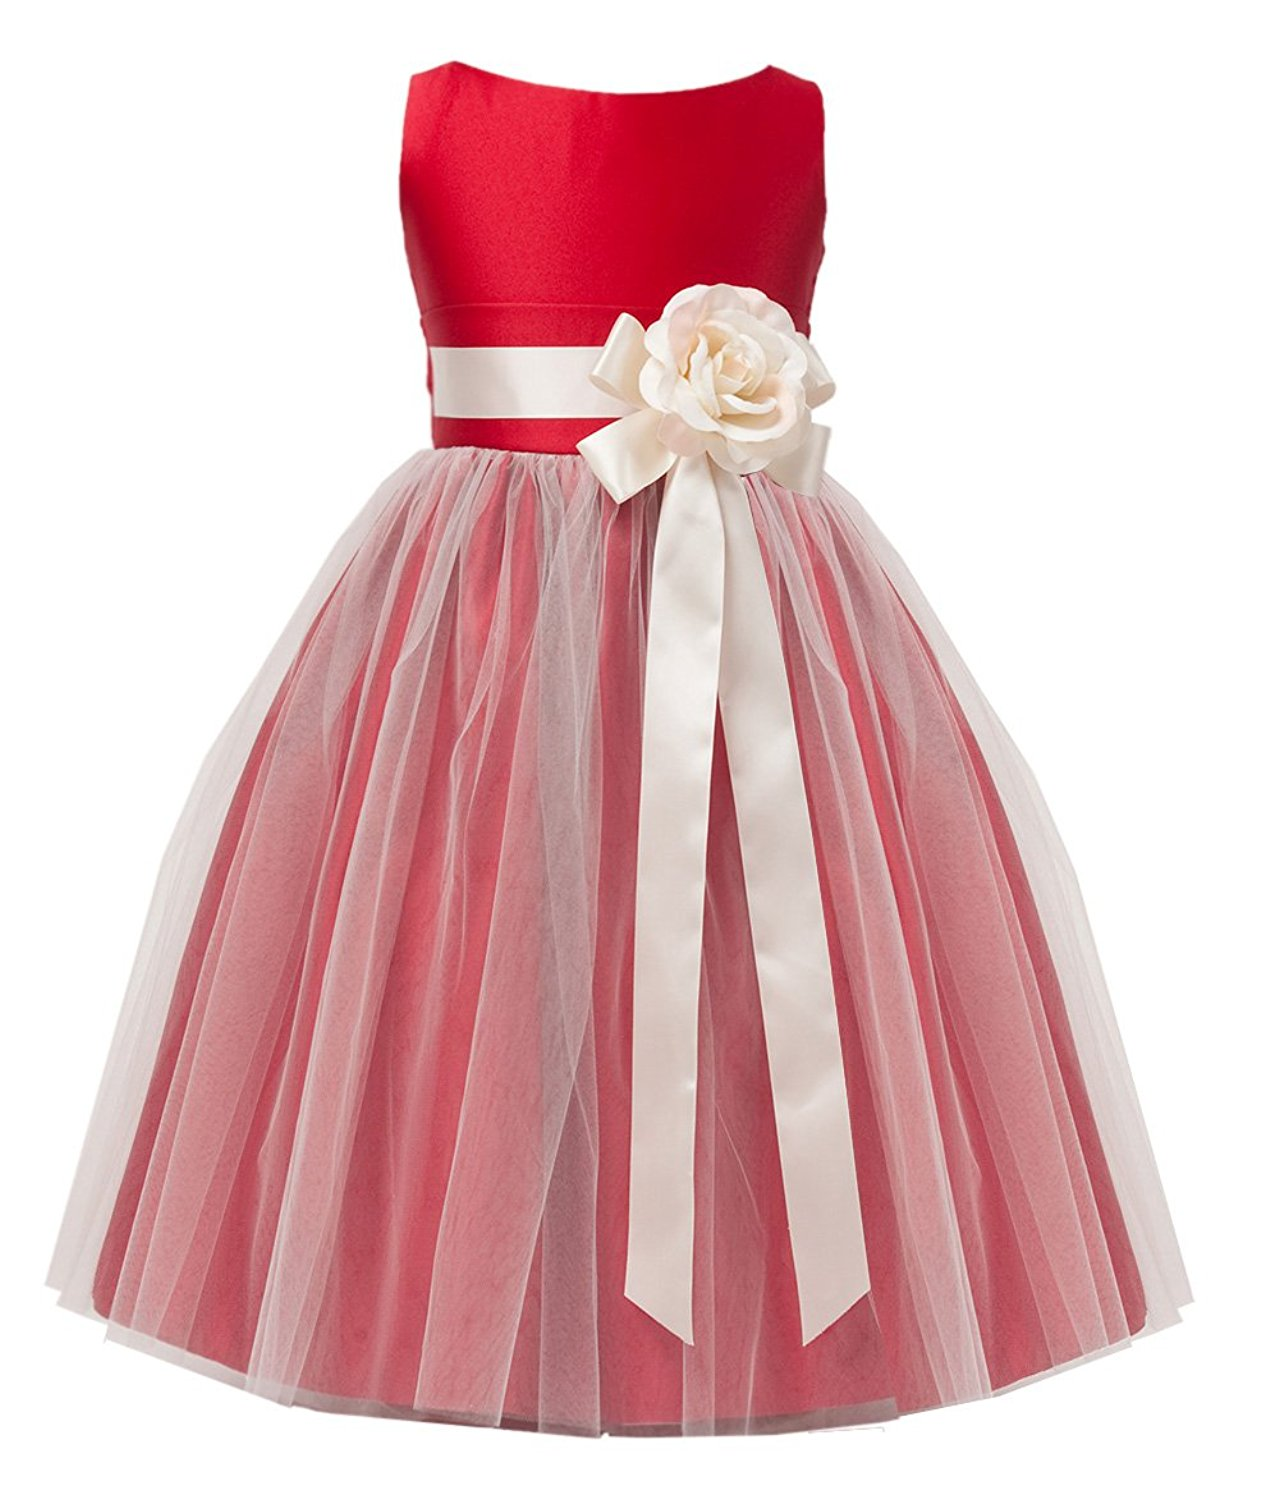 Vintage Style Satin and Tulle Flower Girl Pageant Dress